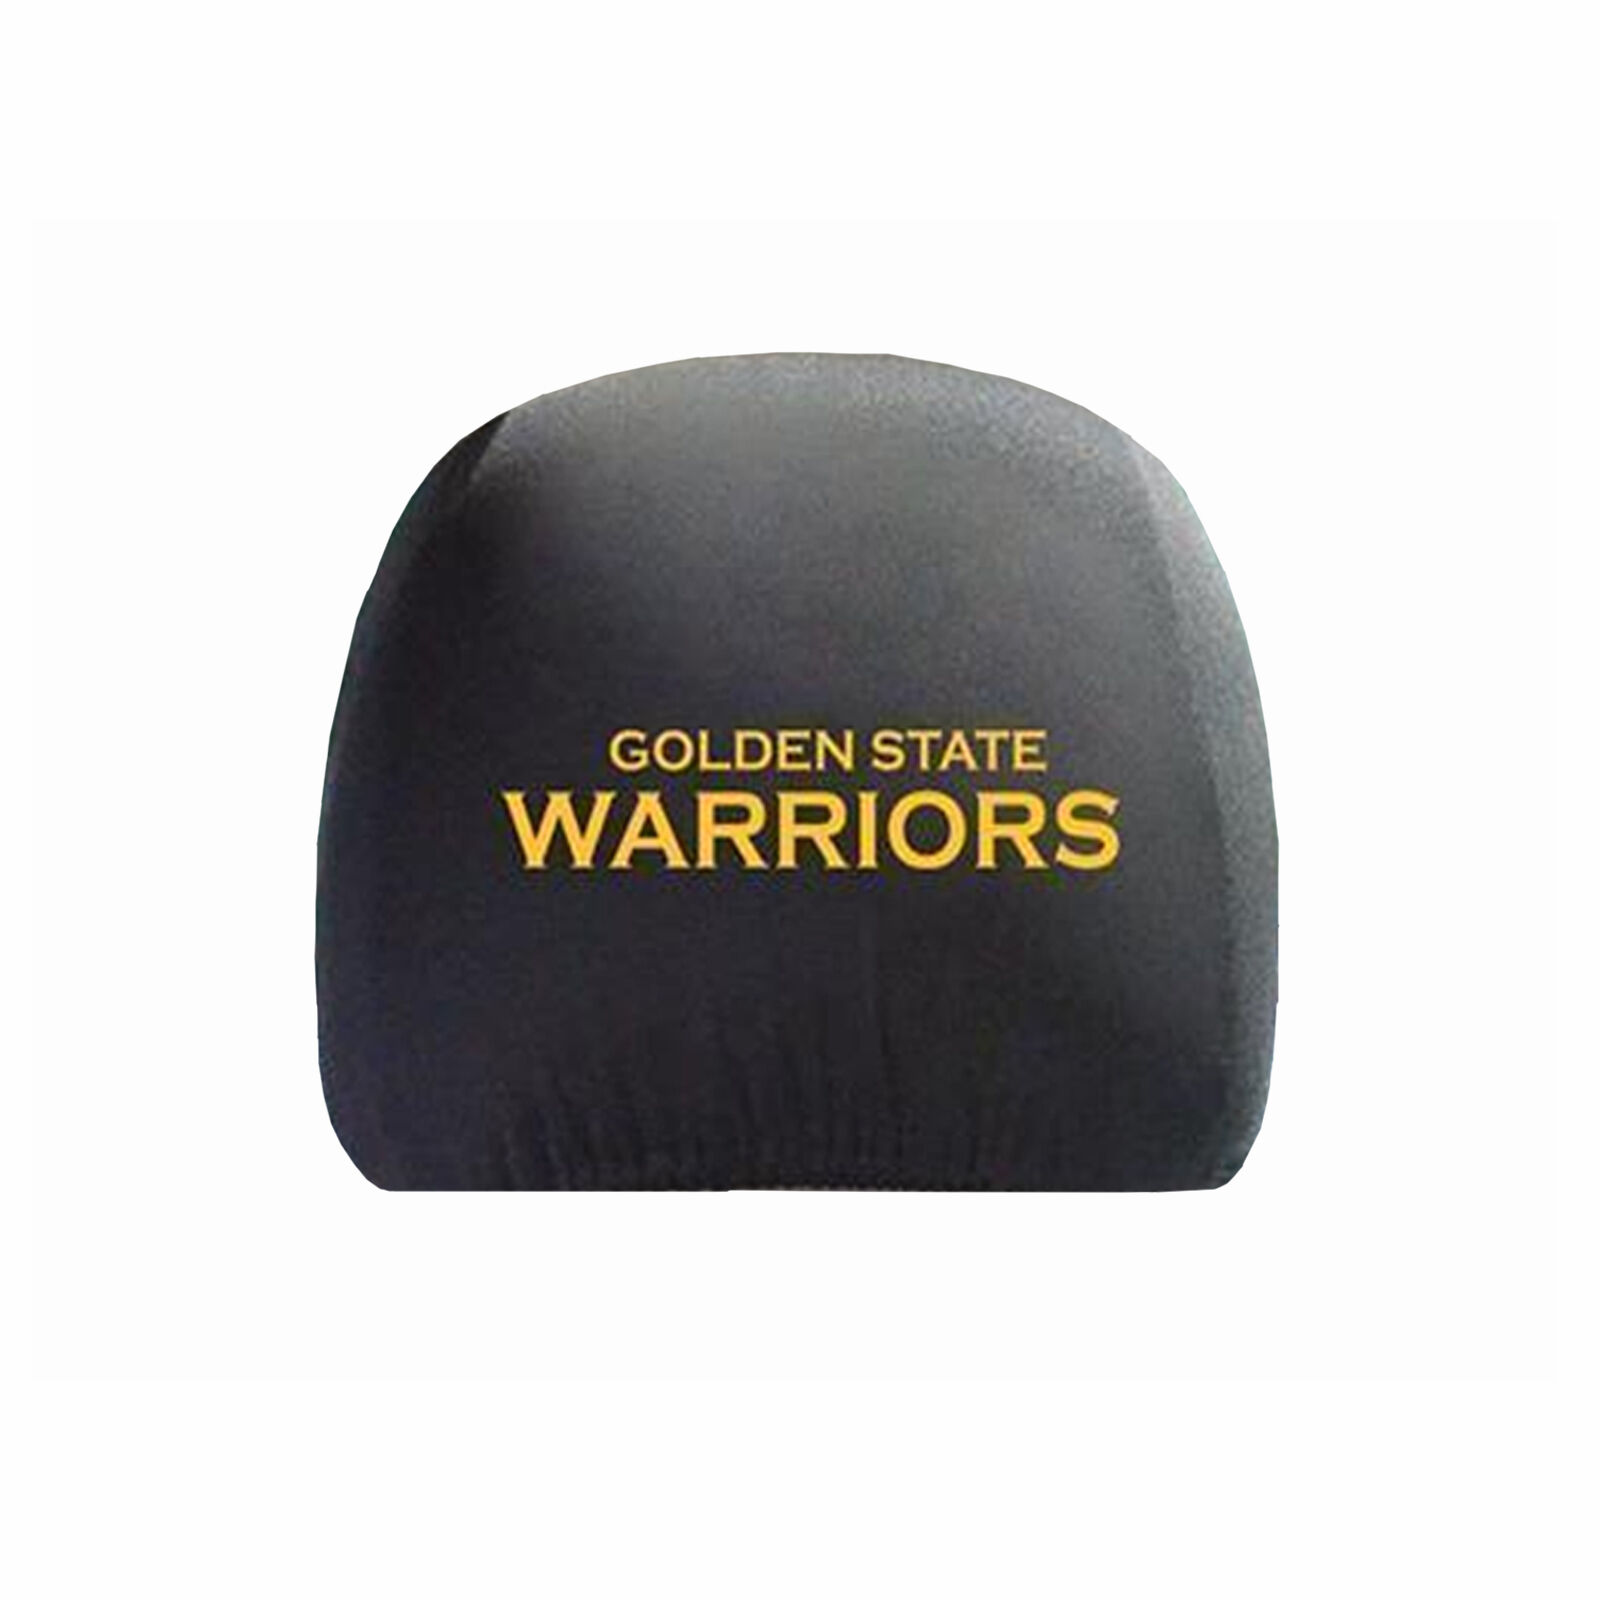 FANMATS NBA Embroidered Golden State Warriors Head Rest Covers Set ... 3cf307b214c1